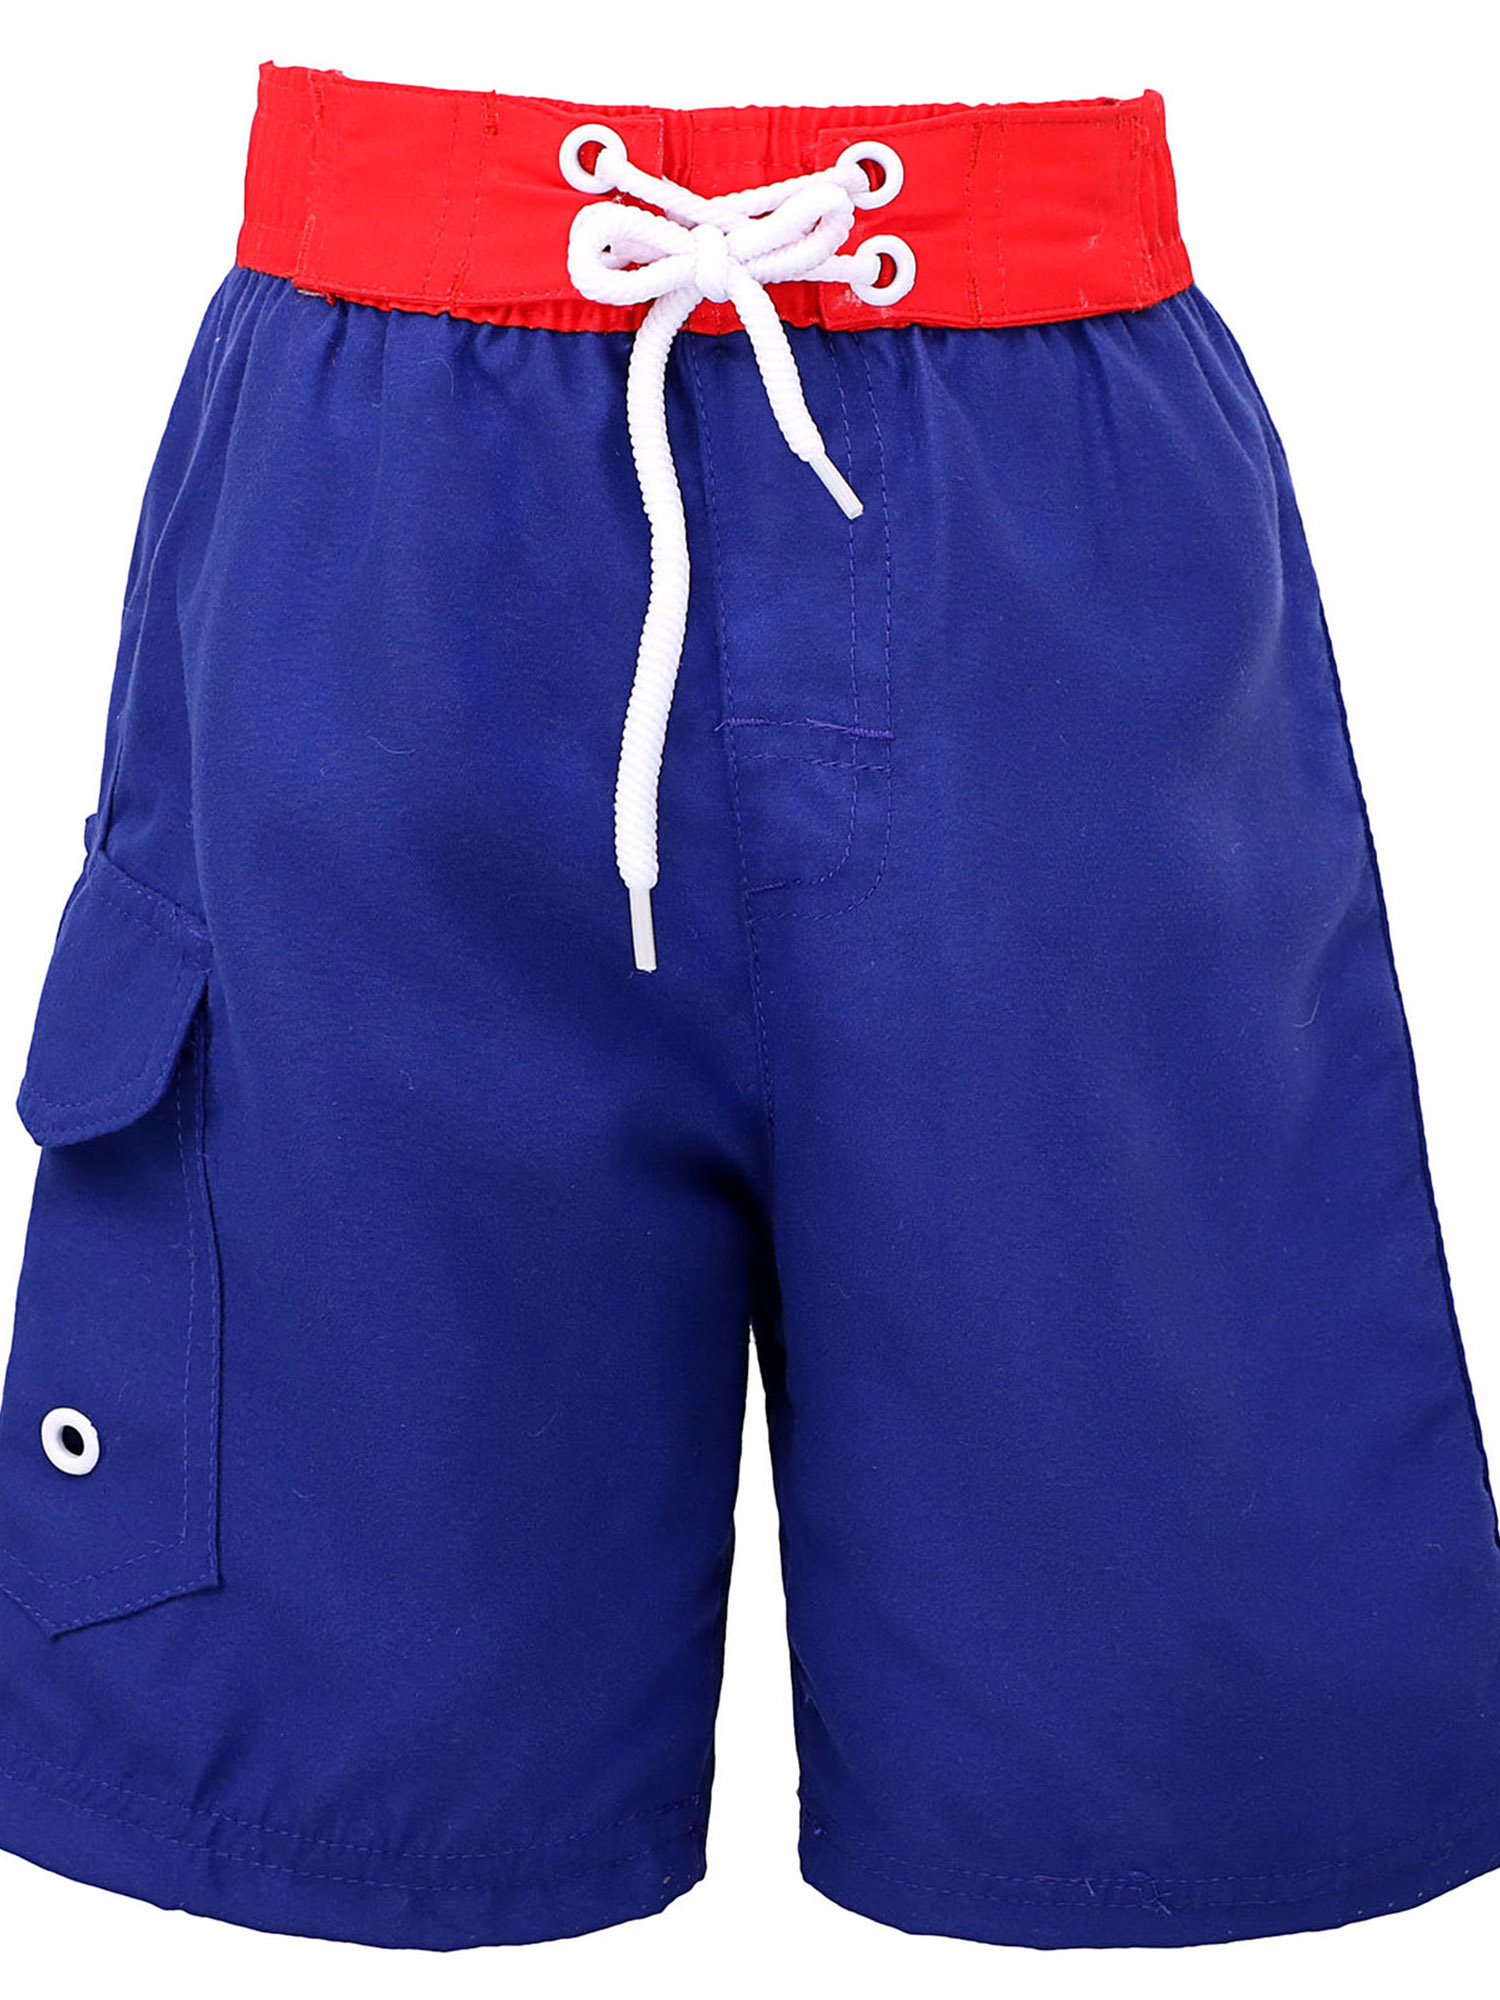 Fast Drying Sea Creature 50+ Sun Protection Kids' Swim Trunks,Blue,XS